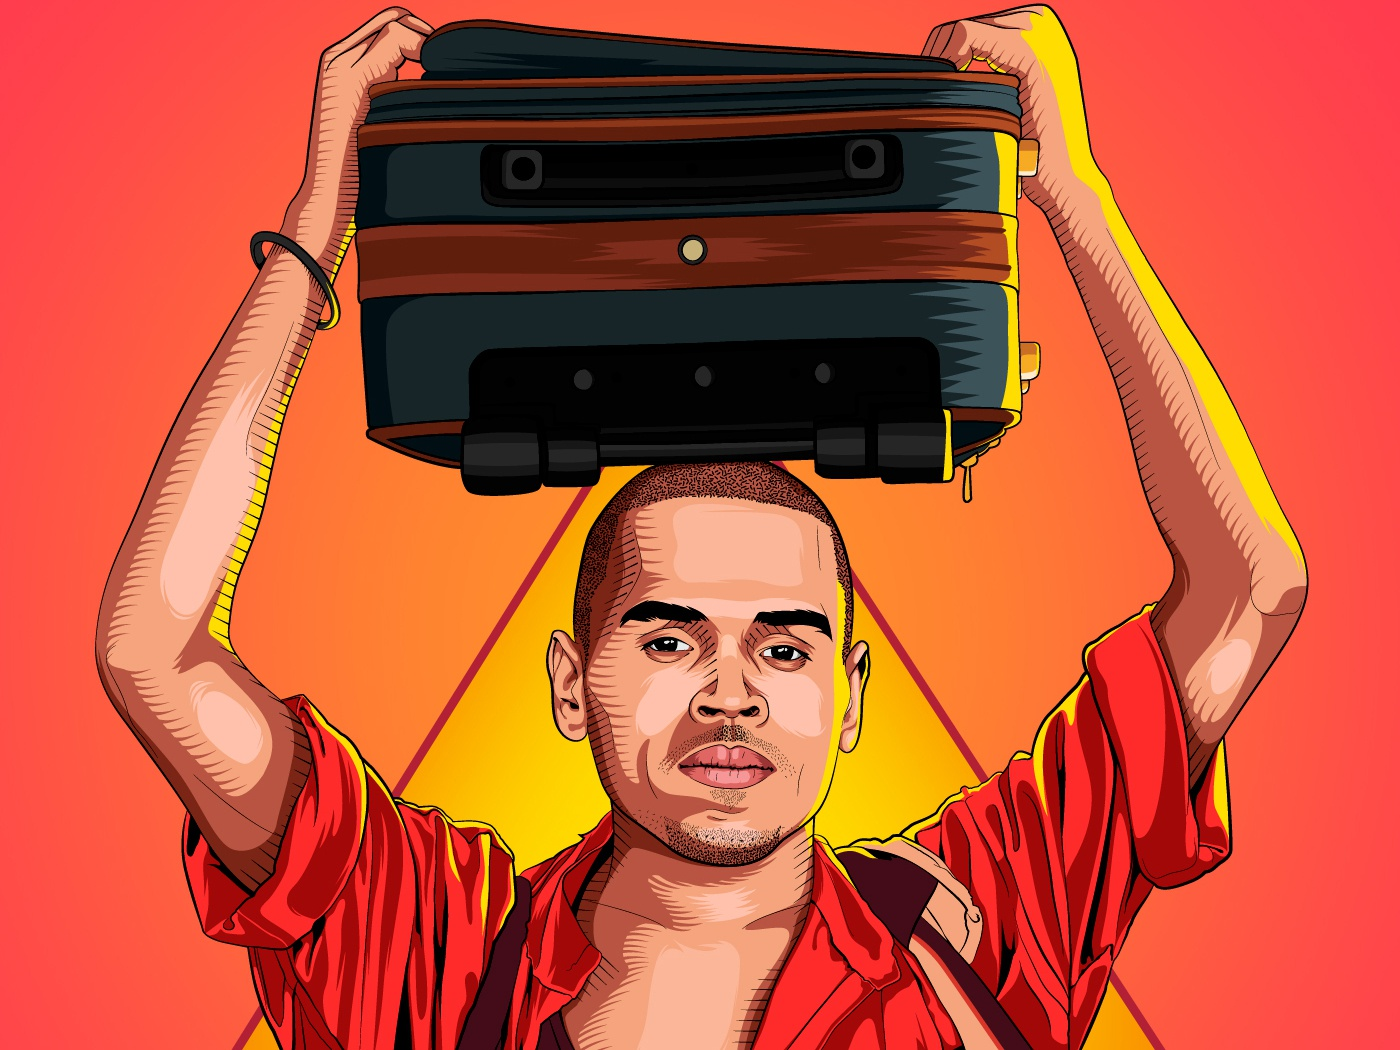 Chris Brown indian hollywood celebrities indian hollywood indian chris brown chris brown character designs indian culture aman rajwansh character concept character art rajwansh art desi kalakaar vector photoshop indian illustrator illustration design art